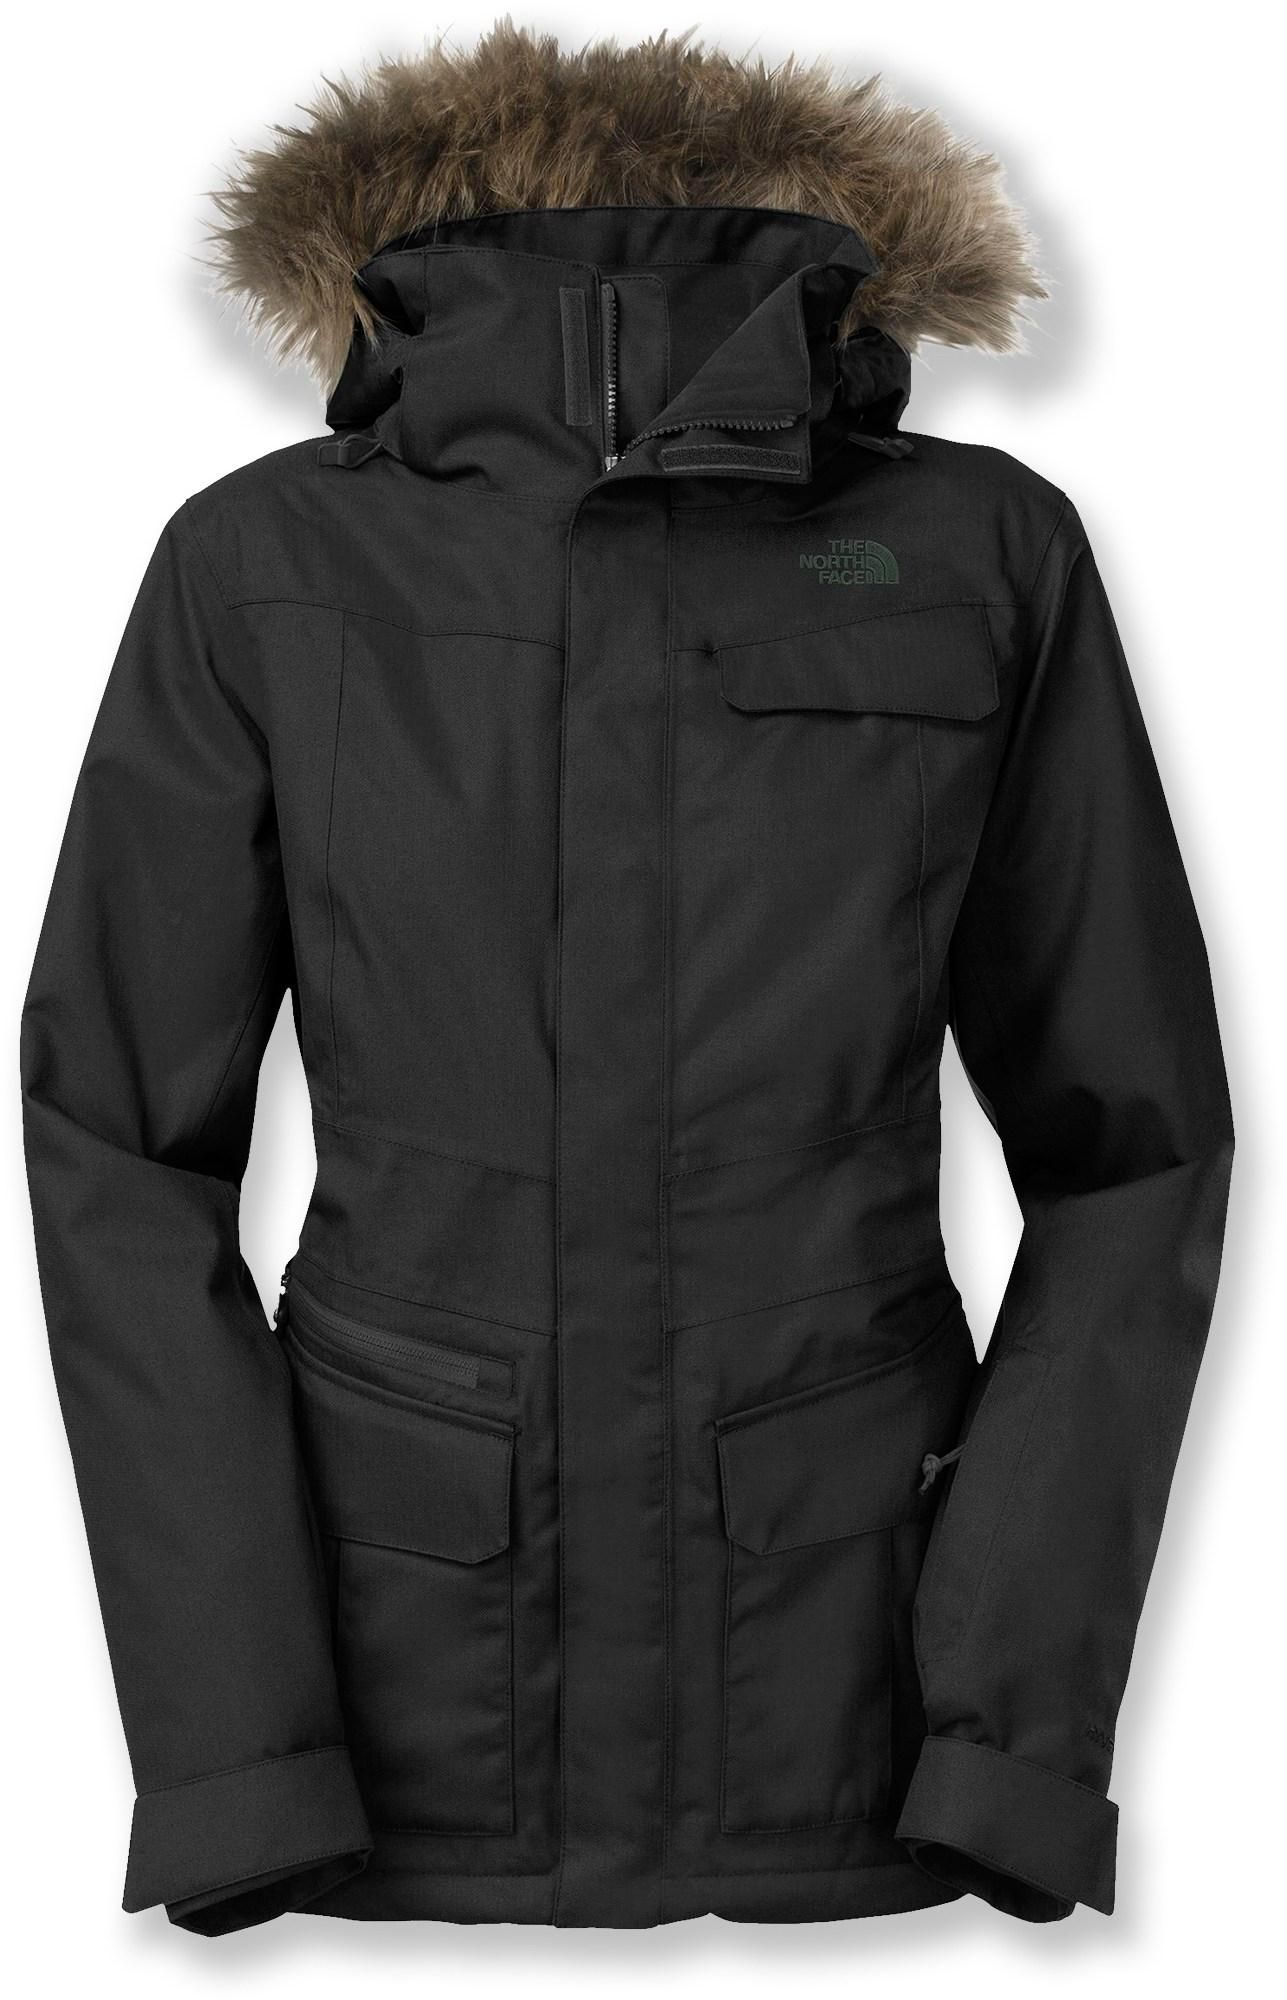 8a6fe589ff Love this cut and fit! The North Face Baker Delux Insulated Jacket ...